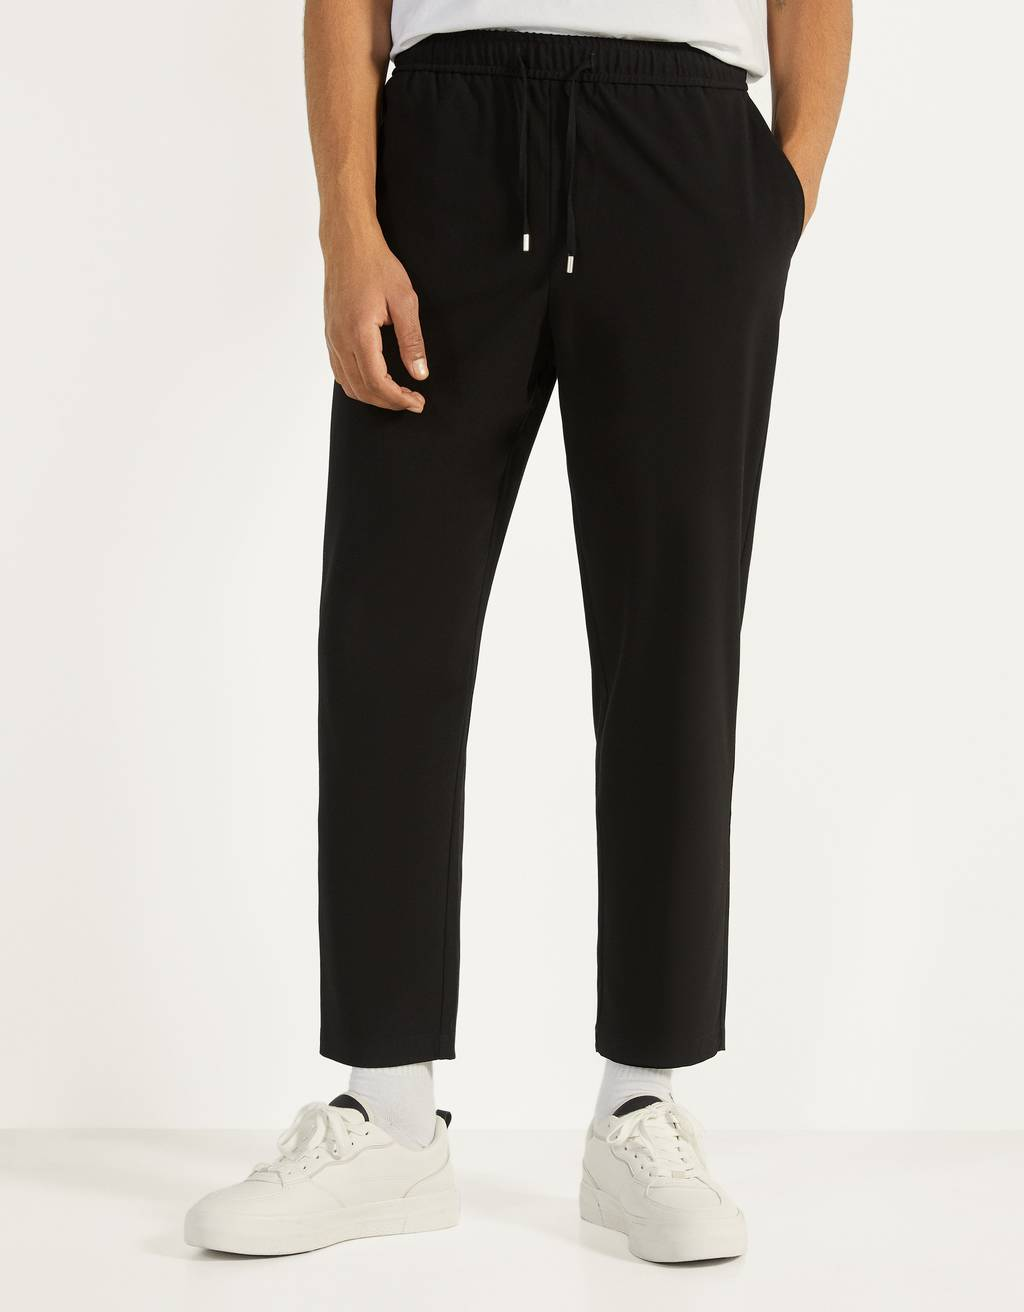 Calças jogger tailored fit